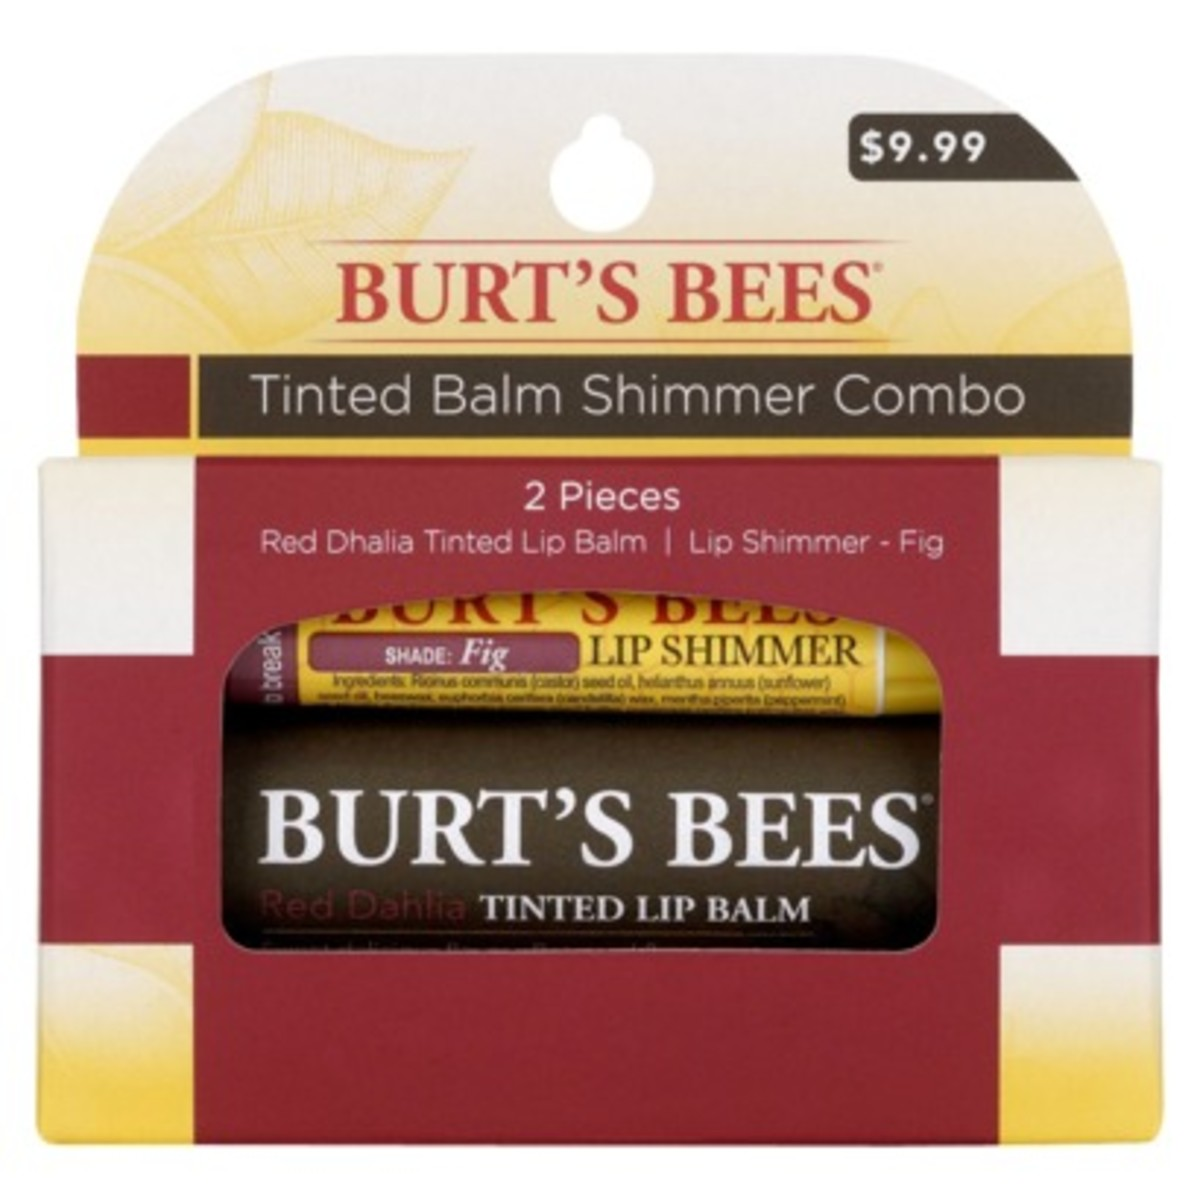 Burt's Bees combo pack (Burt's Bees Tinted Lip Balm Red Dahlia and Burt's Bees Lip Shimmer Fig). I may have actually the color Papaya for the Lip Shimmer.